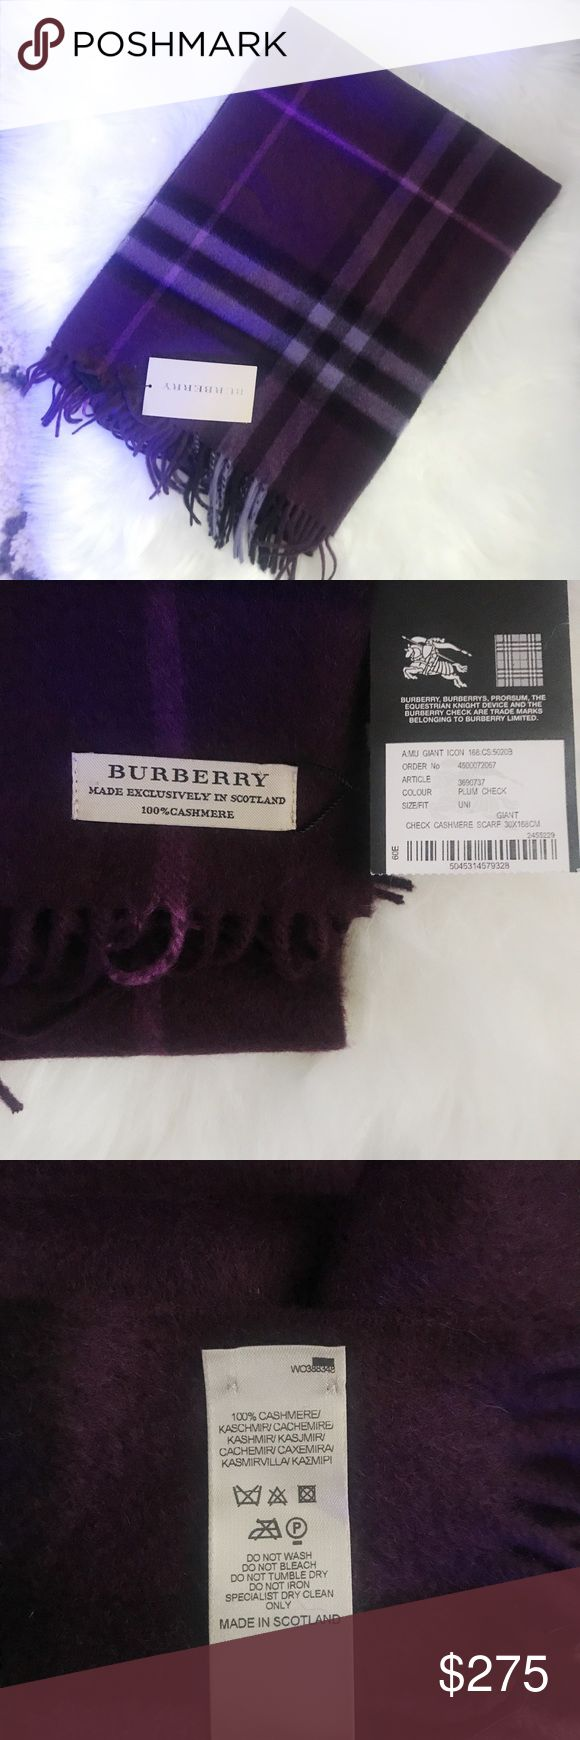 Burberry Giant Icon Check Cashmere Scarf Plum Authentic Burberry Giant Icon Check 100% Cashmere Scarf in Plum Check. Made in Scotland. 30 x 168 cm. Article # 3690737 Burberry Accessories Scarves & Wraps